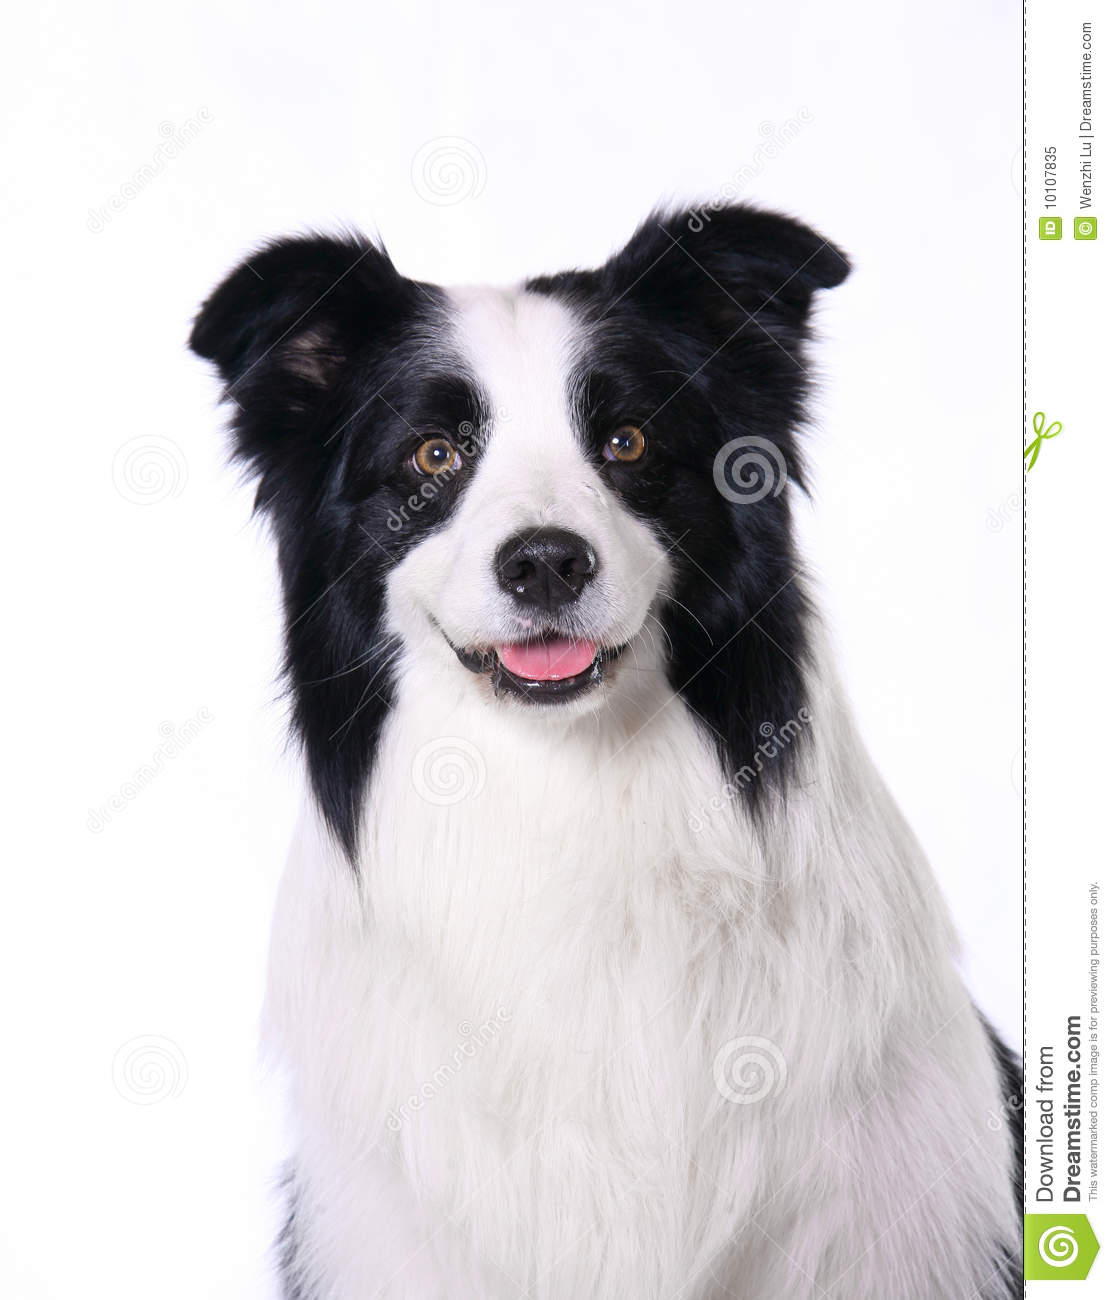 Dog pet Border Collie